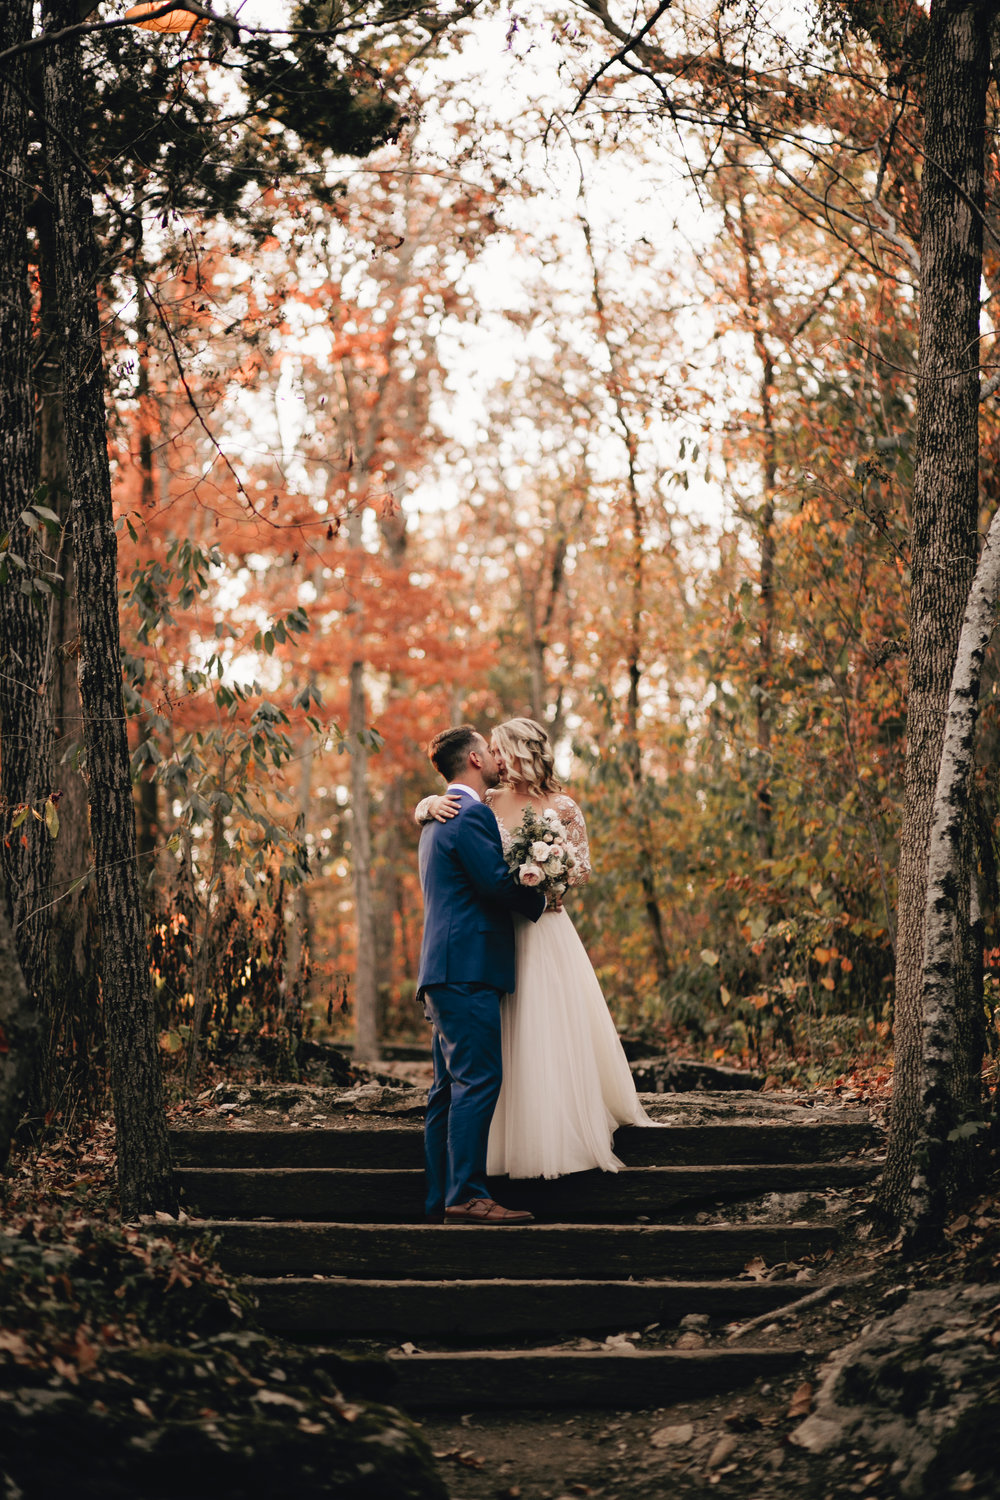 Fall Wedding Autumn The Wrens Nest Portrait Bride and Groom Photography Anthology